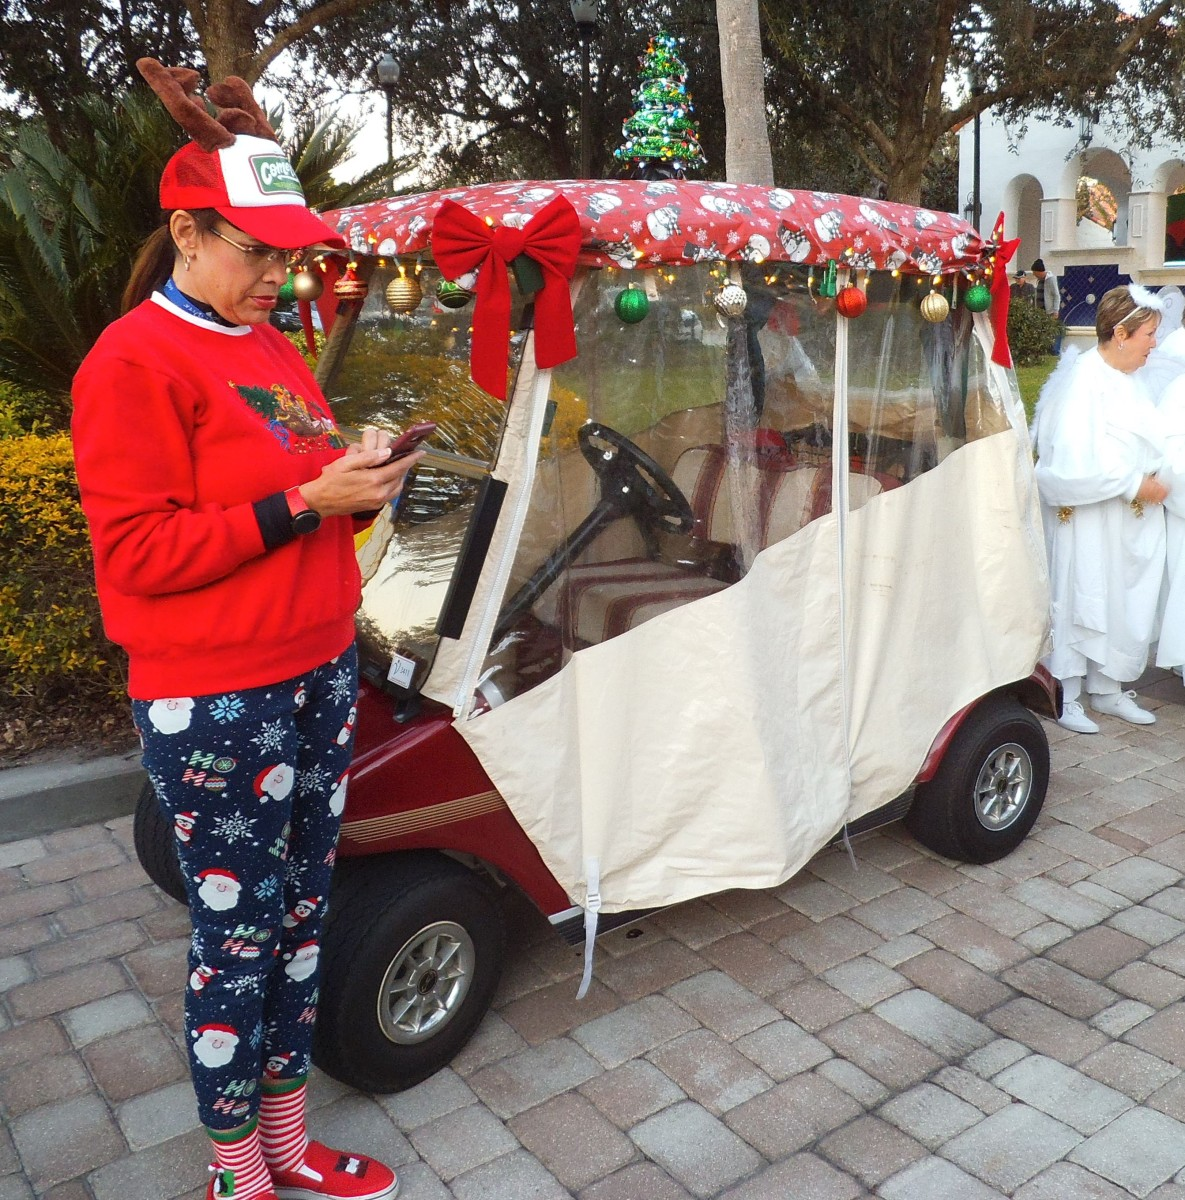 2019 Christmas golf cart parade at Solivita in Florida.